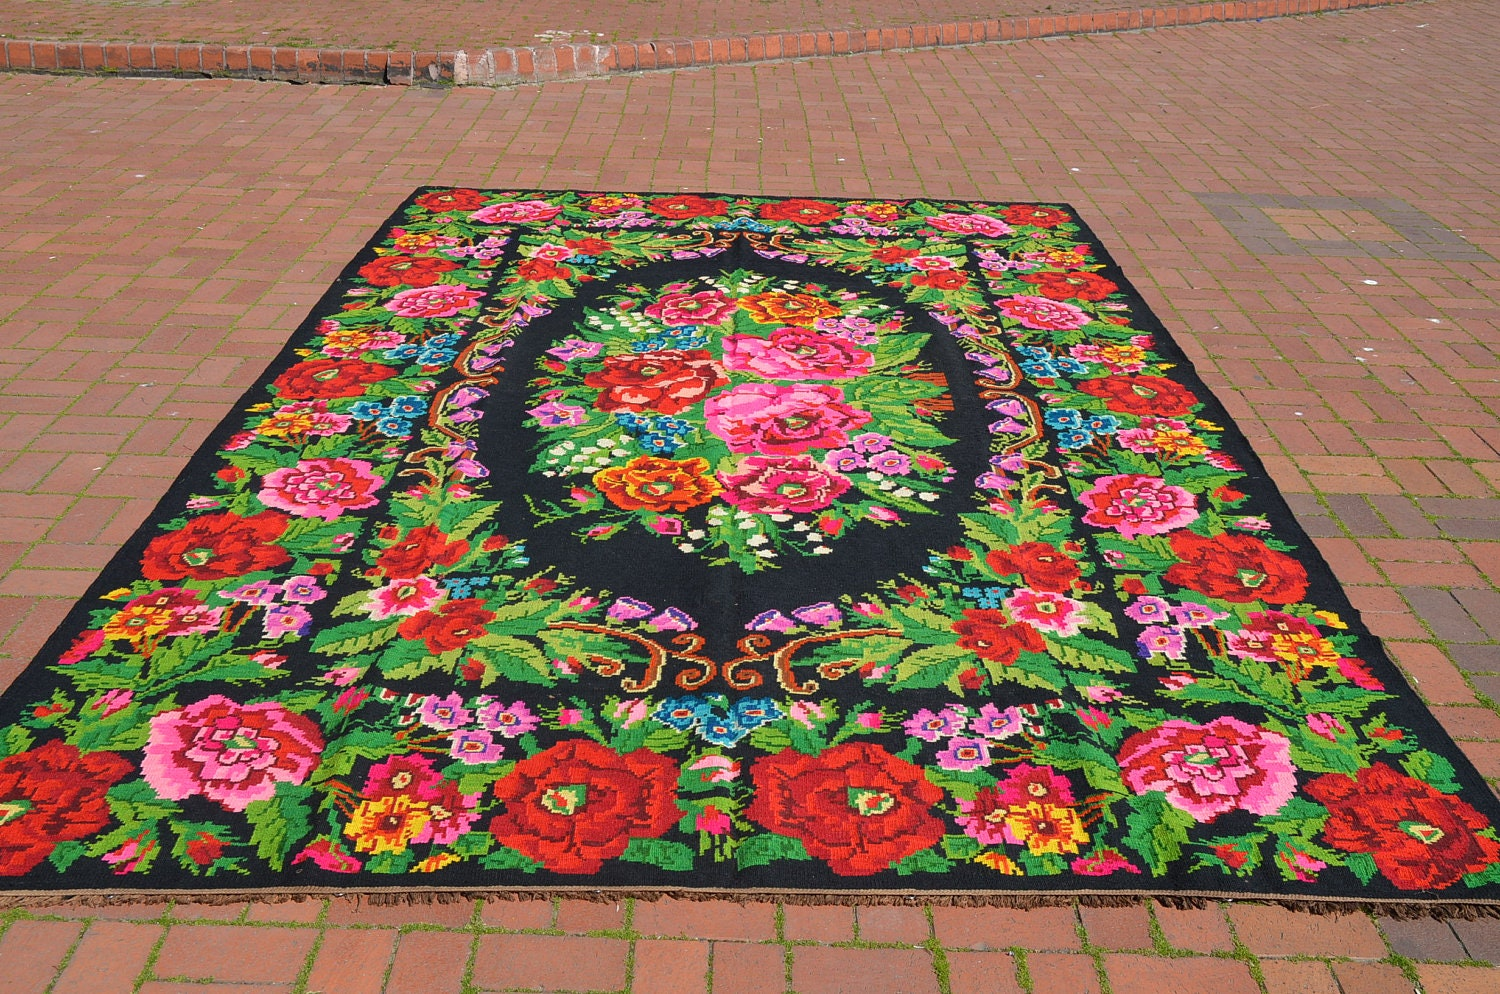 Decorative karabakh kilim bohemian rug ethnic rug for Decor international handwoven rugs